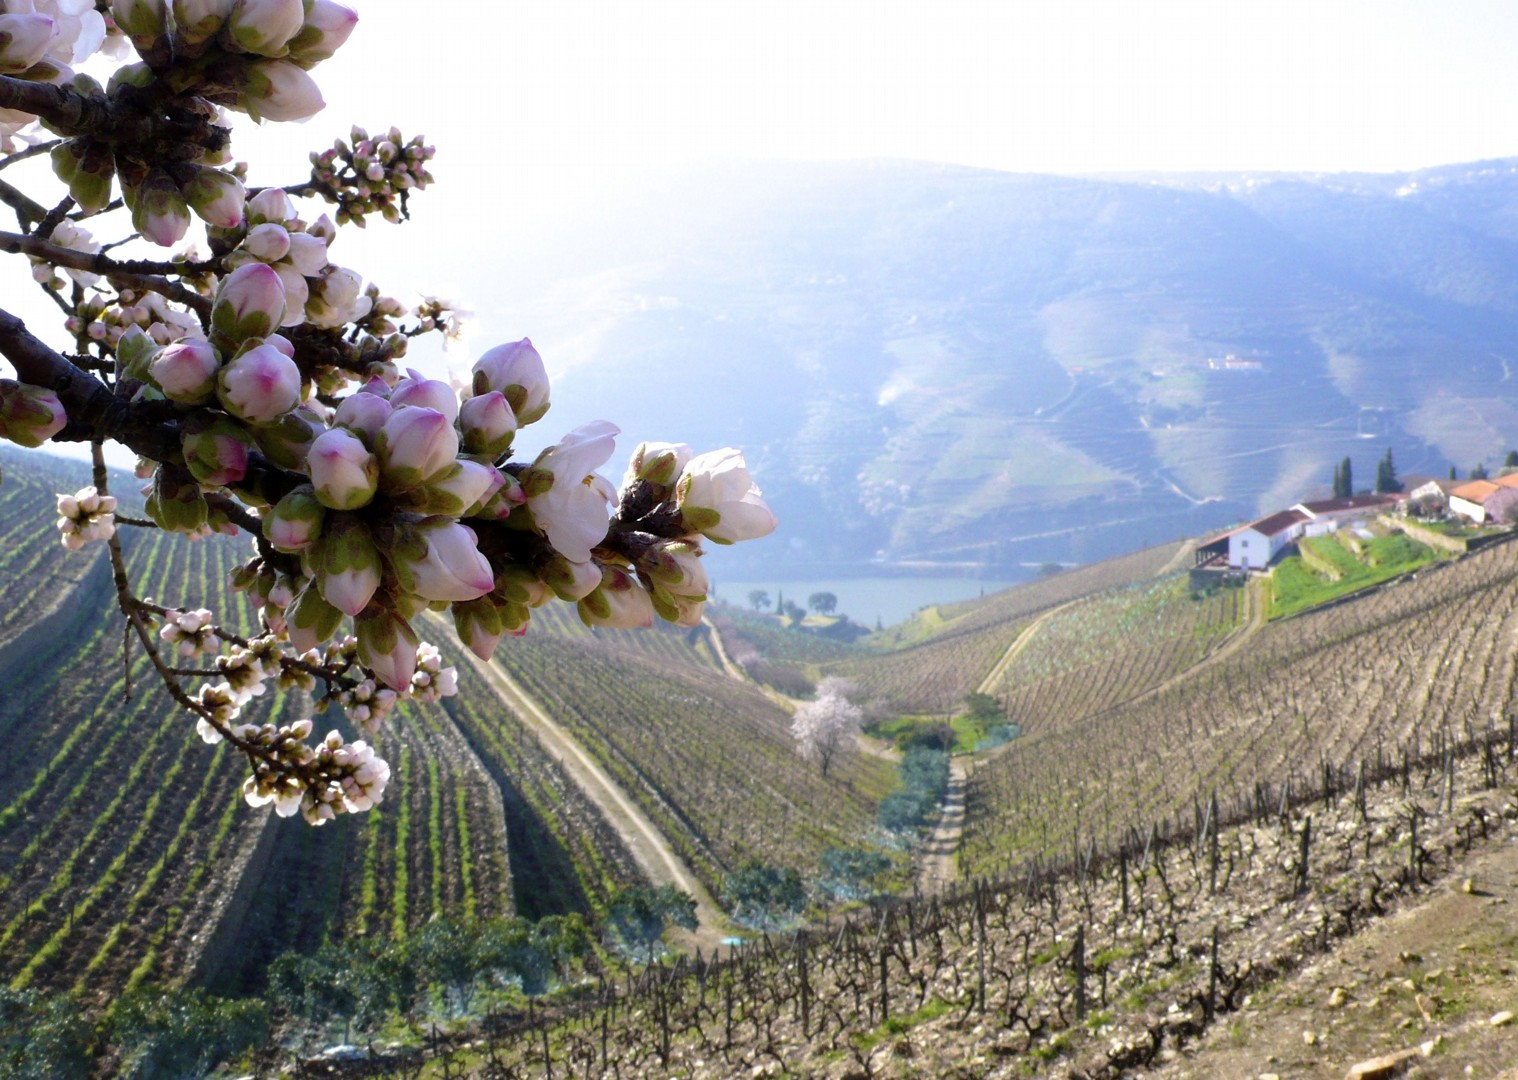 portugalduoro4.jpg - Portugal - Vineyards of the Douro Valley - Guided Road Cycling Holiday - Road Cycling